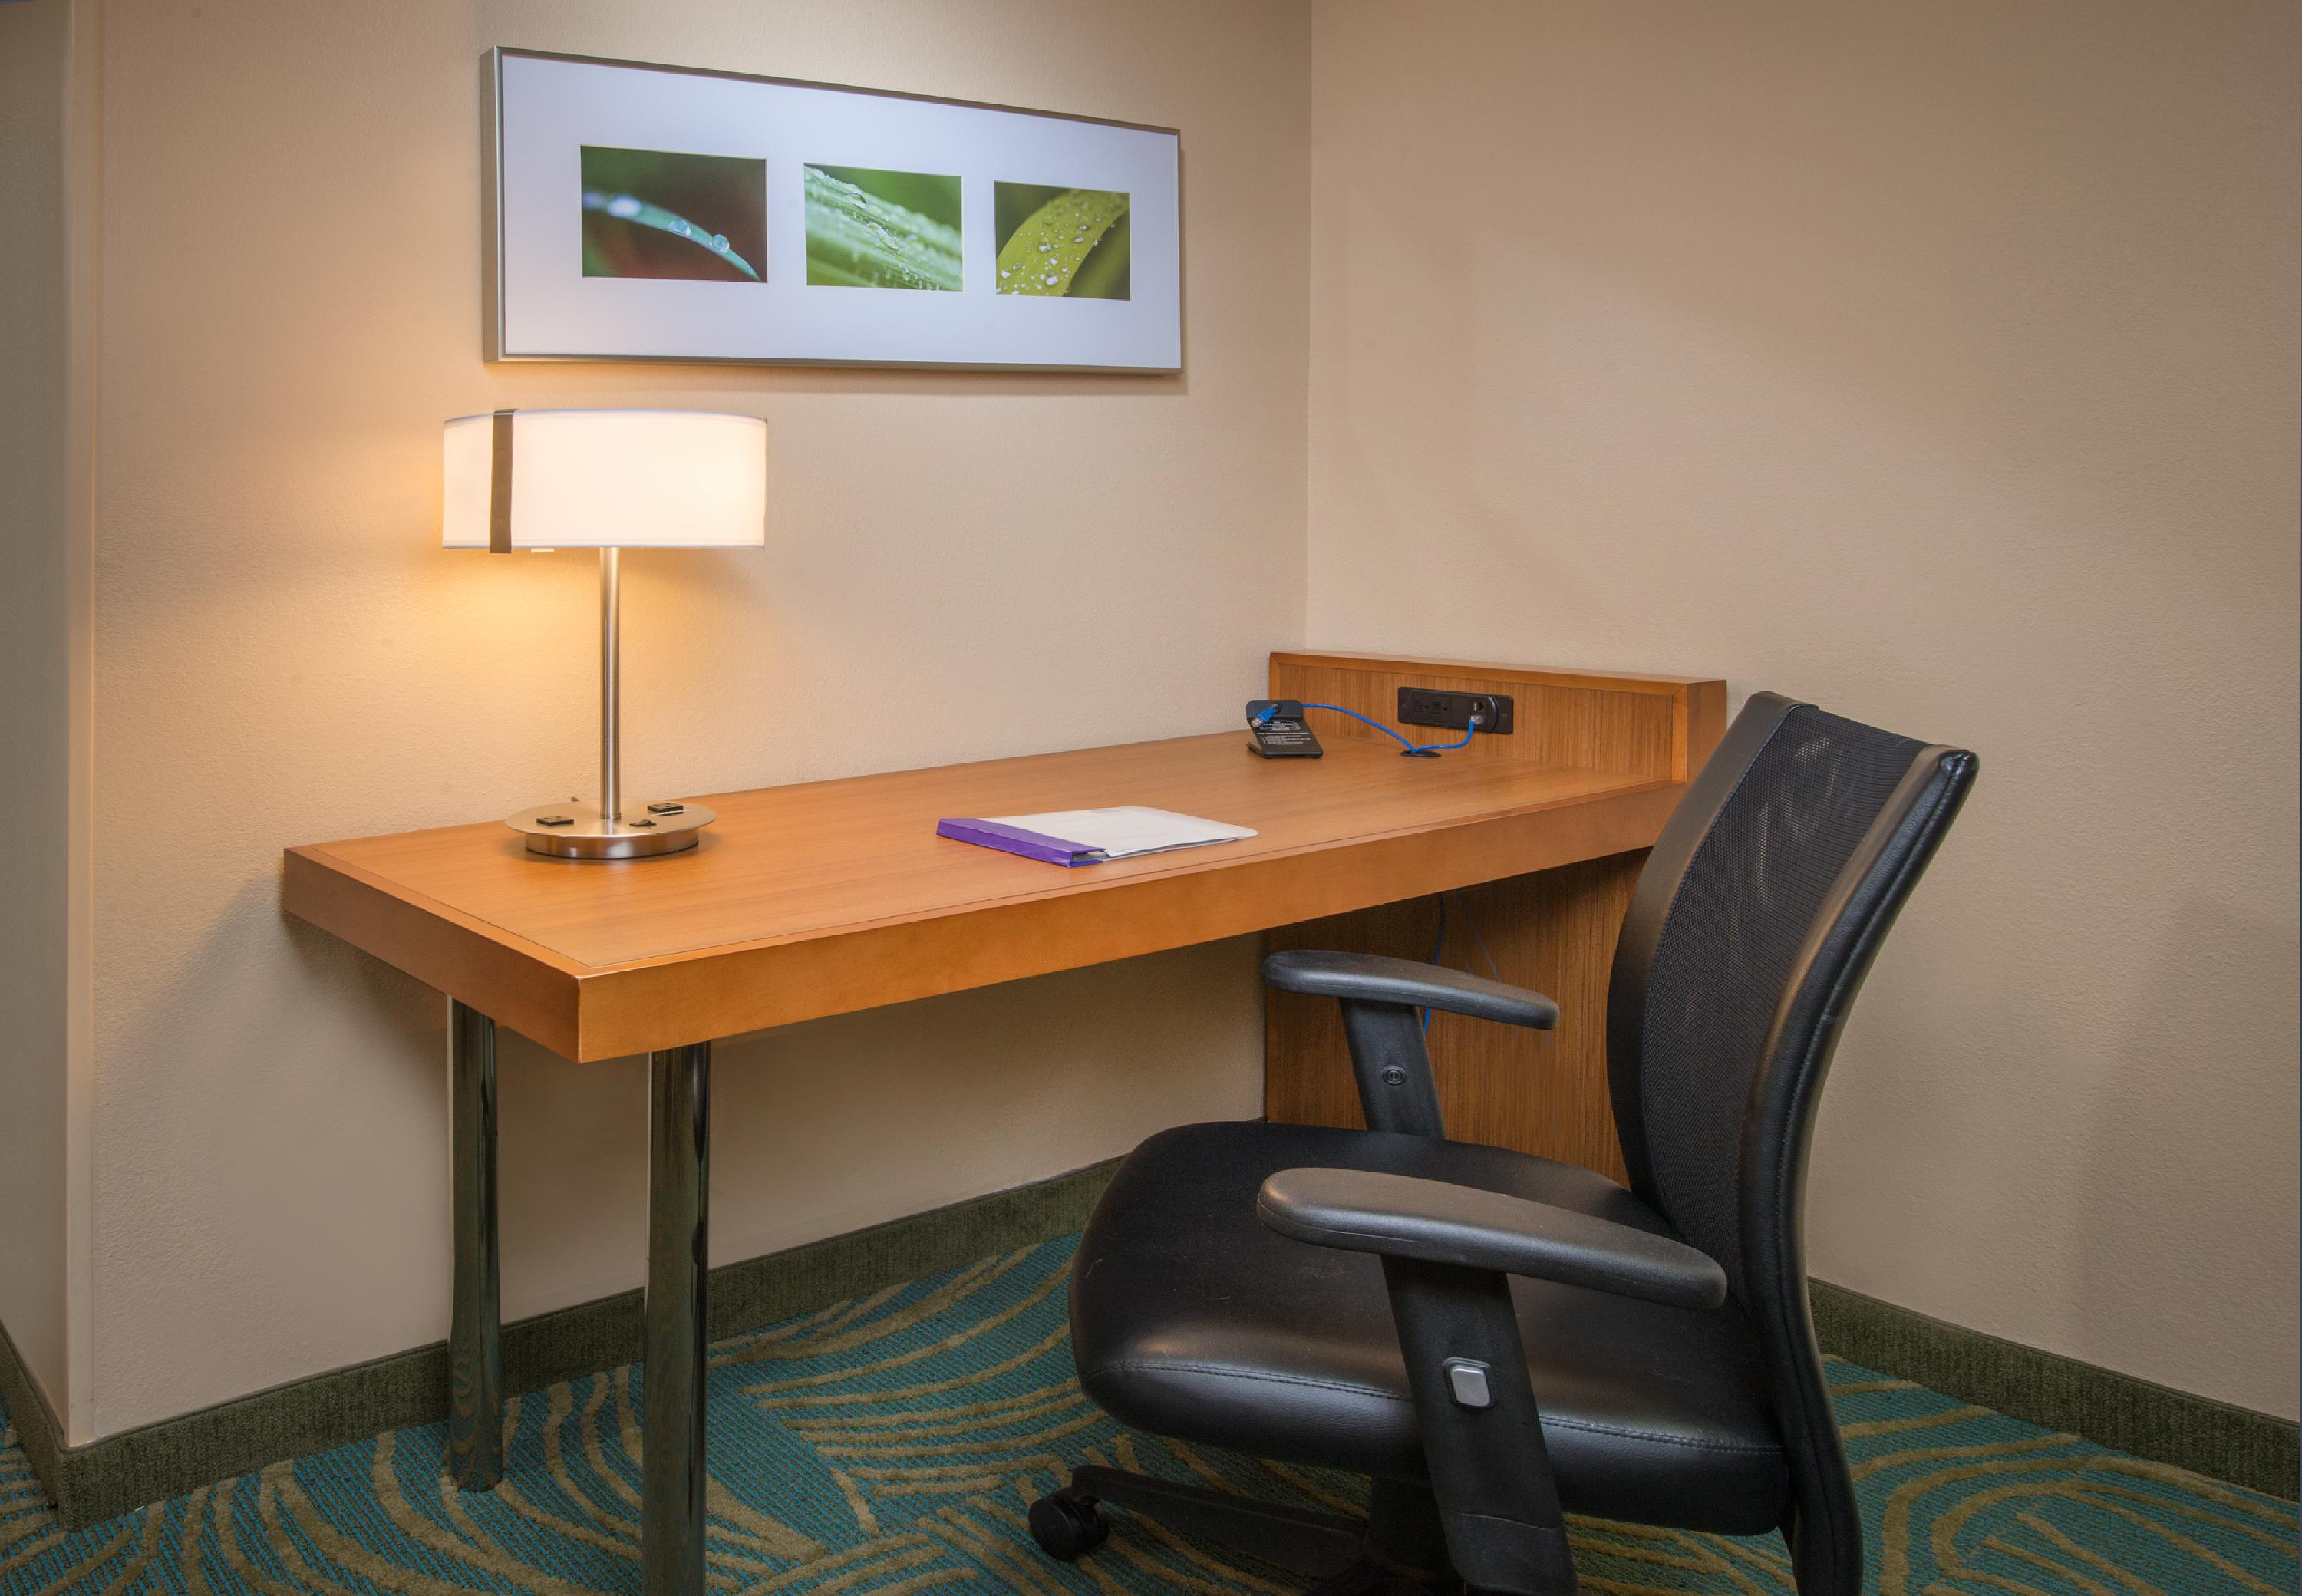 SpringHill Suites by Marriott Edgewood Aberdeen image 9